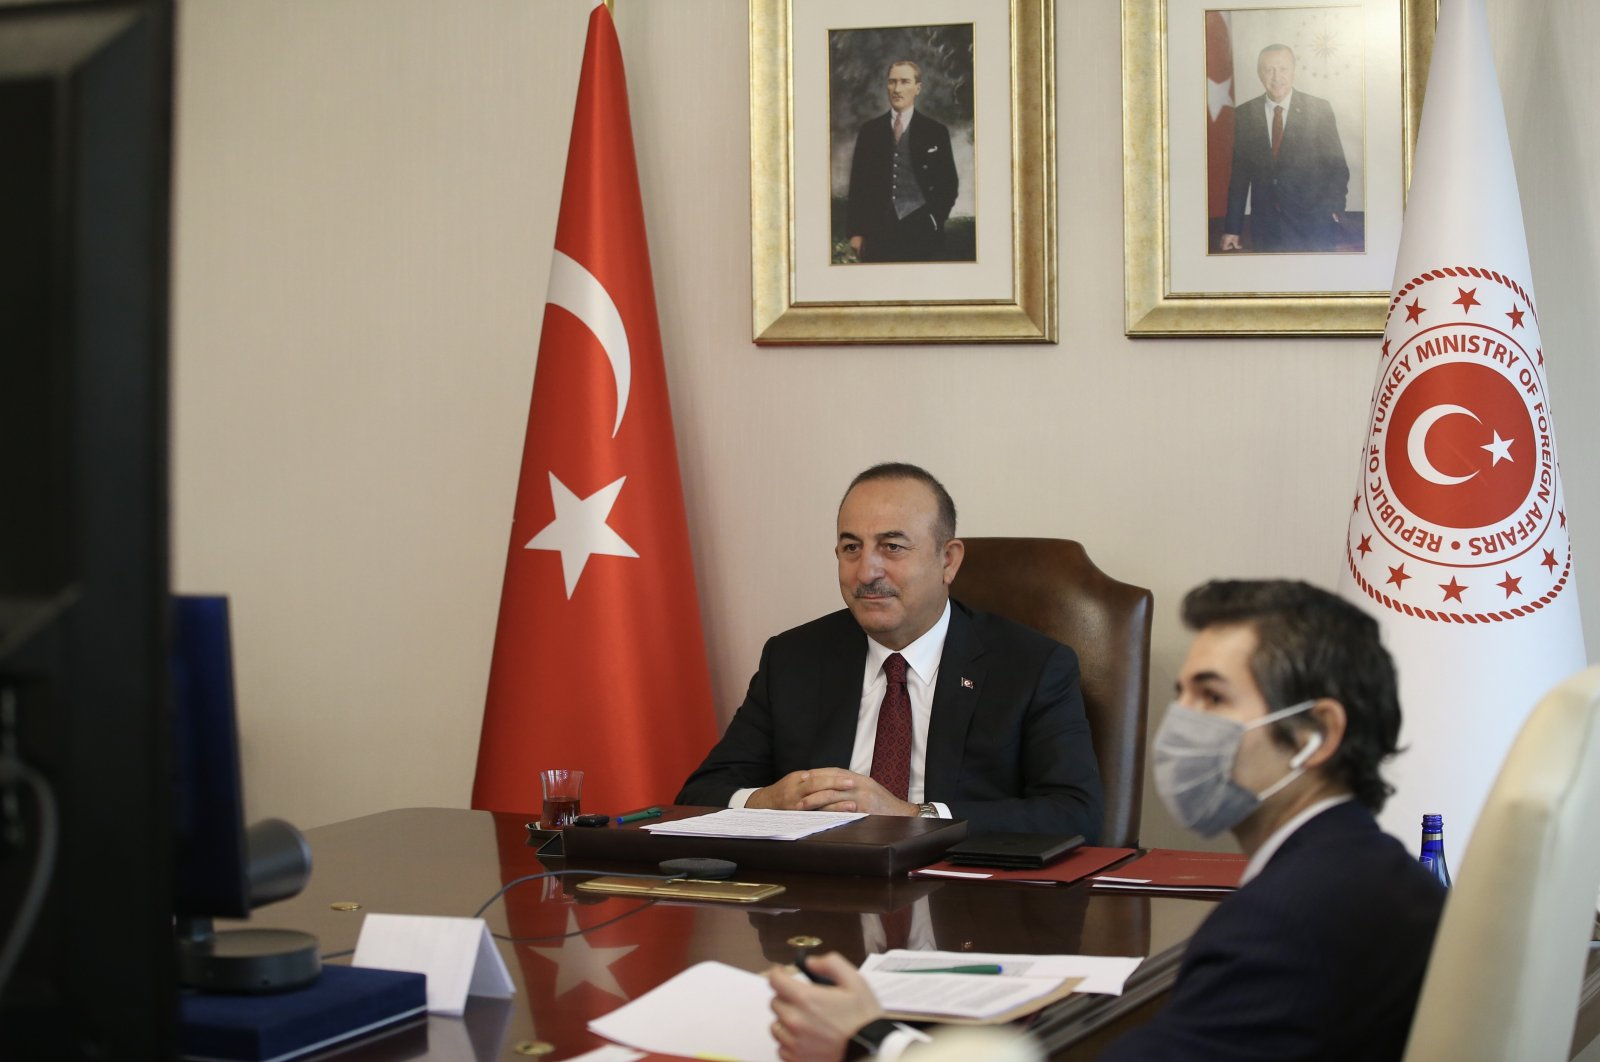 Foreign Minister Mevlüt Çavuşoğlu attends the 130th Session of the Committee of Ministers of the Council of Europe via videoconference, Ankara, Turkey, Nov. 4, 2020. (AA Photo)